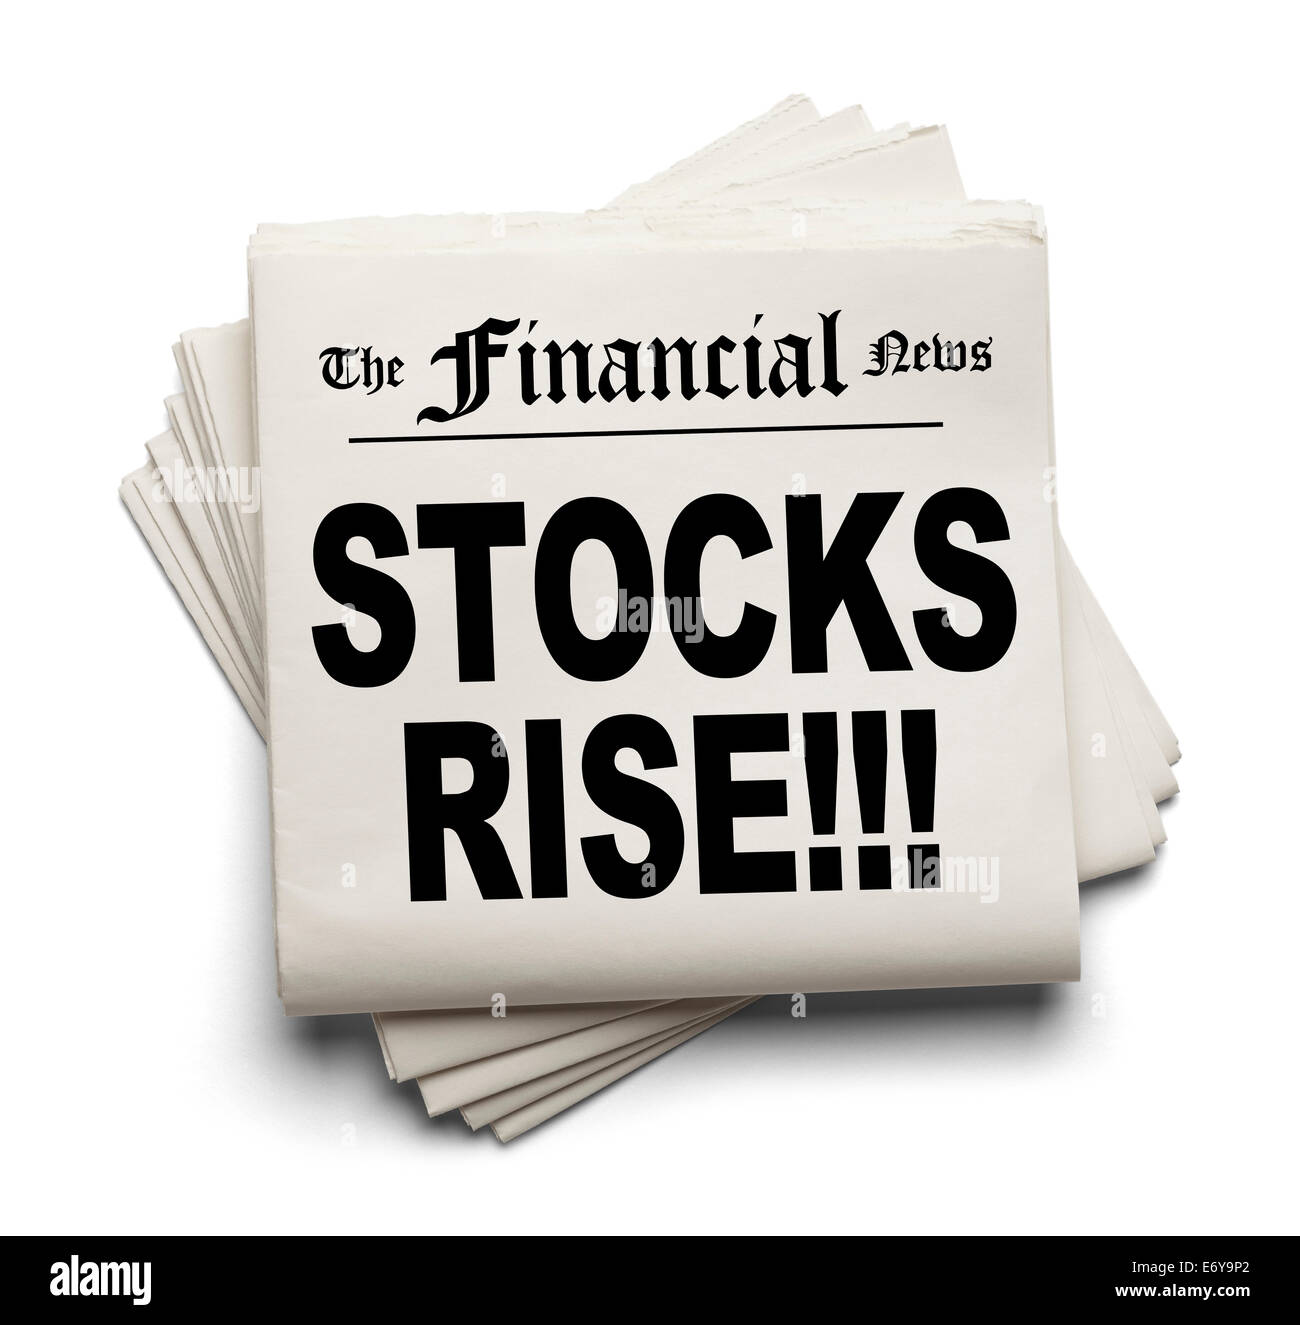 Financial News Paper Headline Stocks Rise Isolated on White Background. - Stock Image